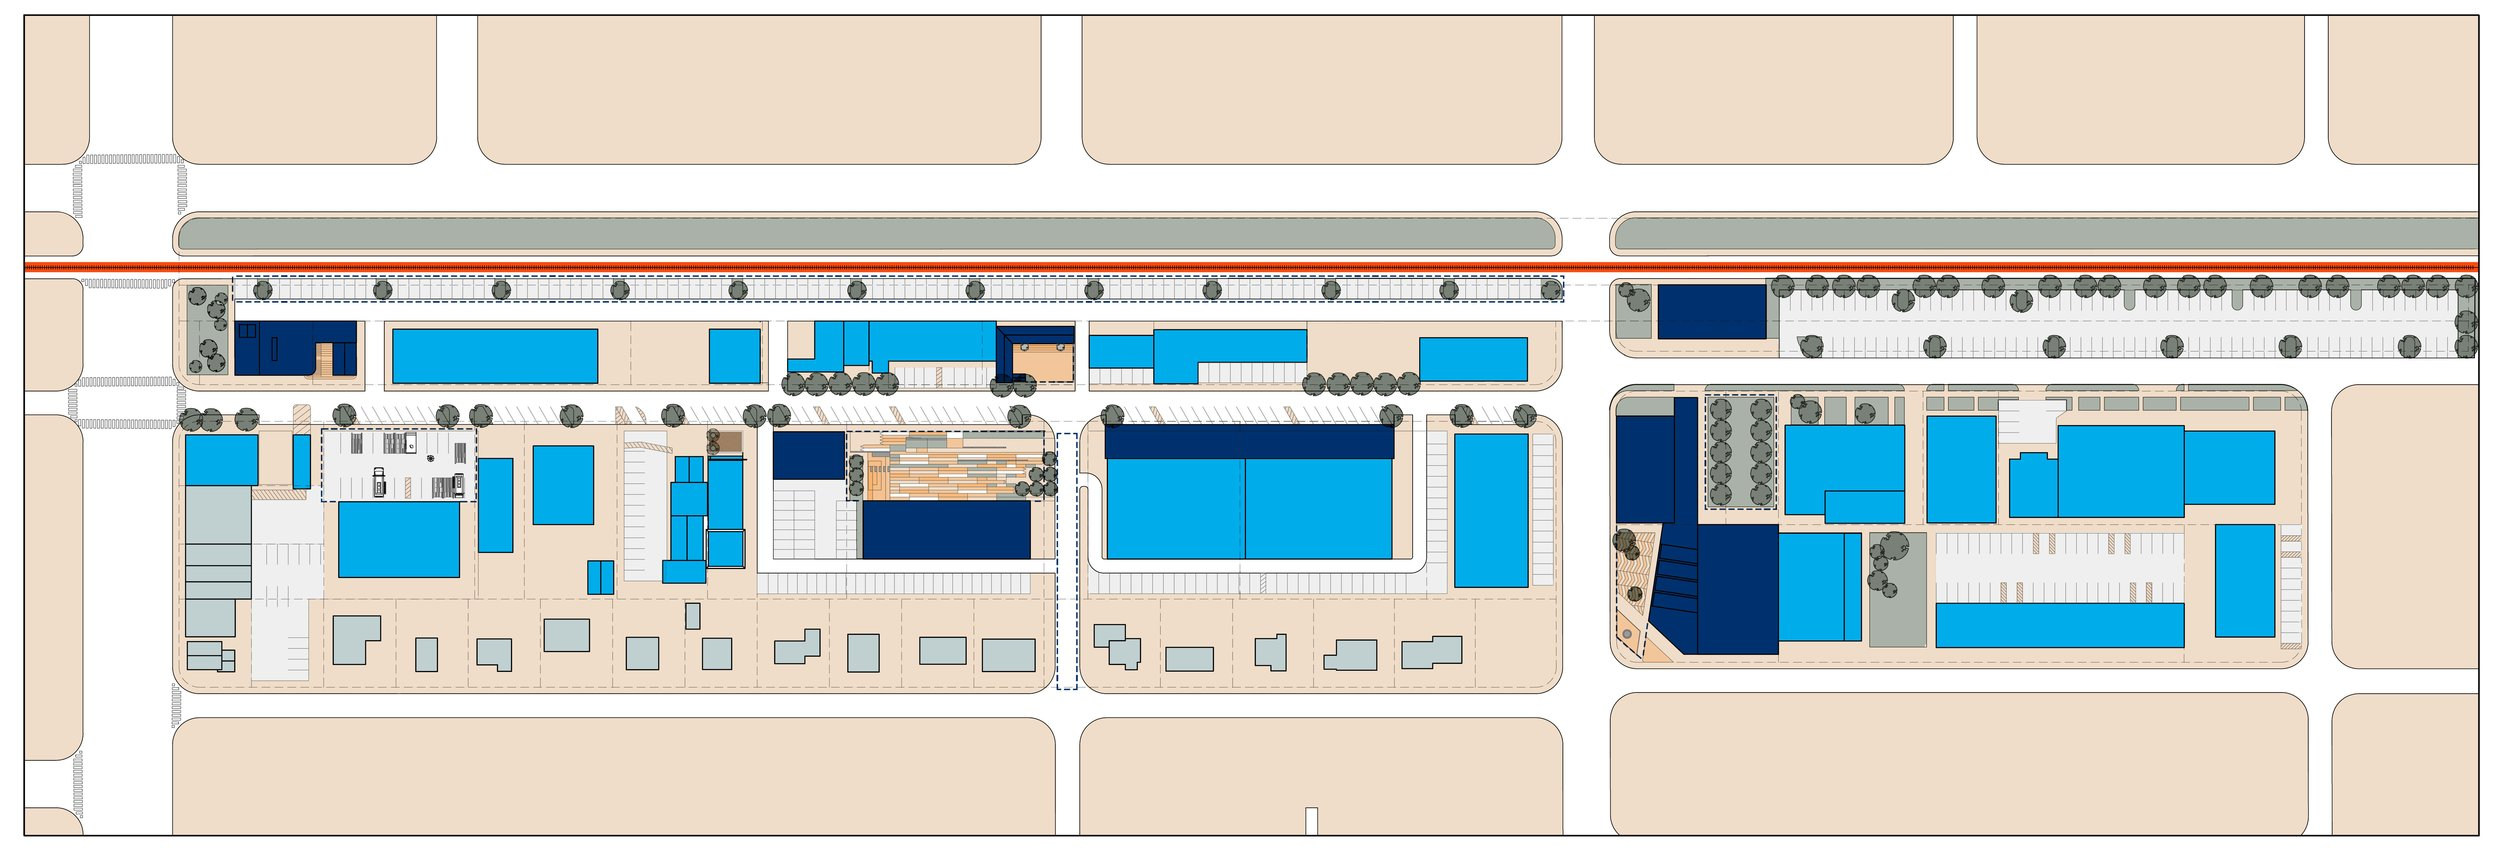 Proposed Plan (new buildings in navy blue)